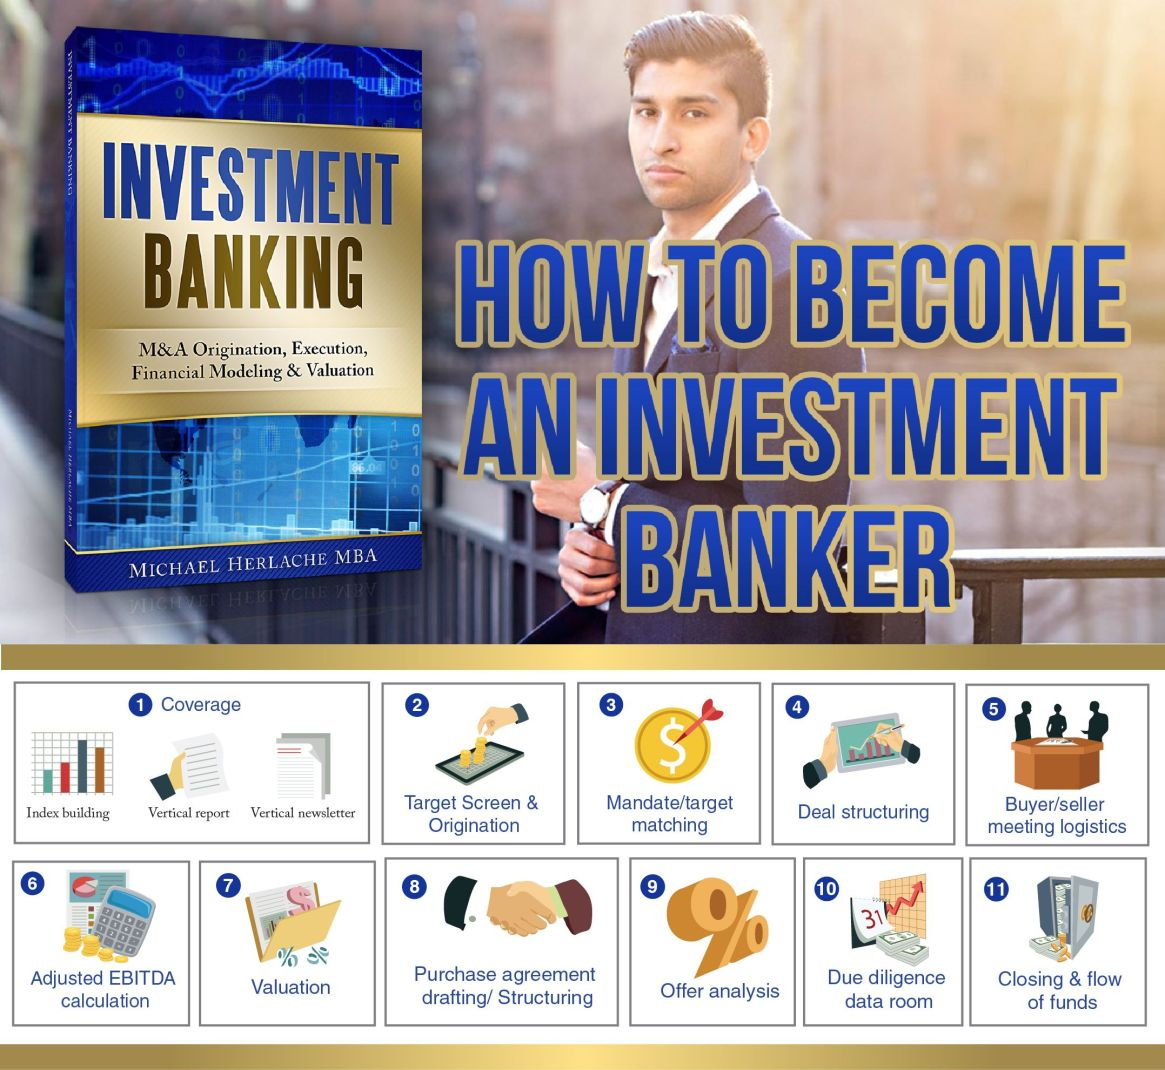 Investment Banking University - How to Become an Investment Banker